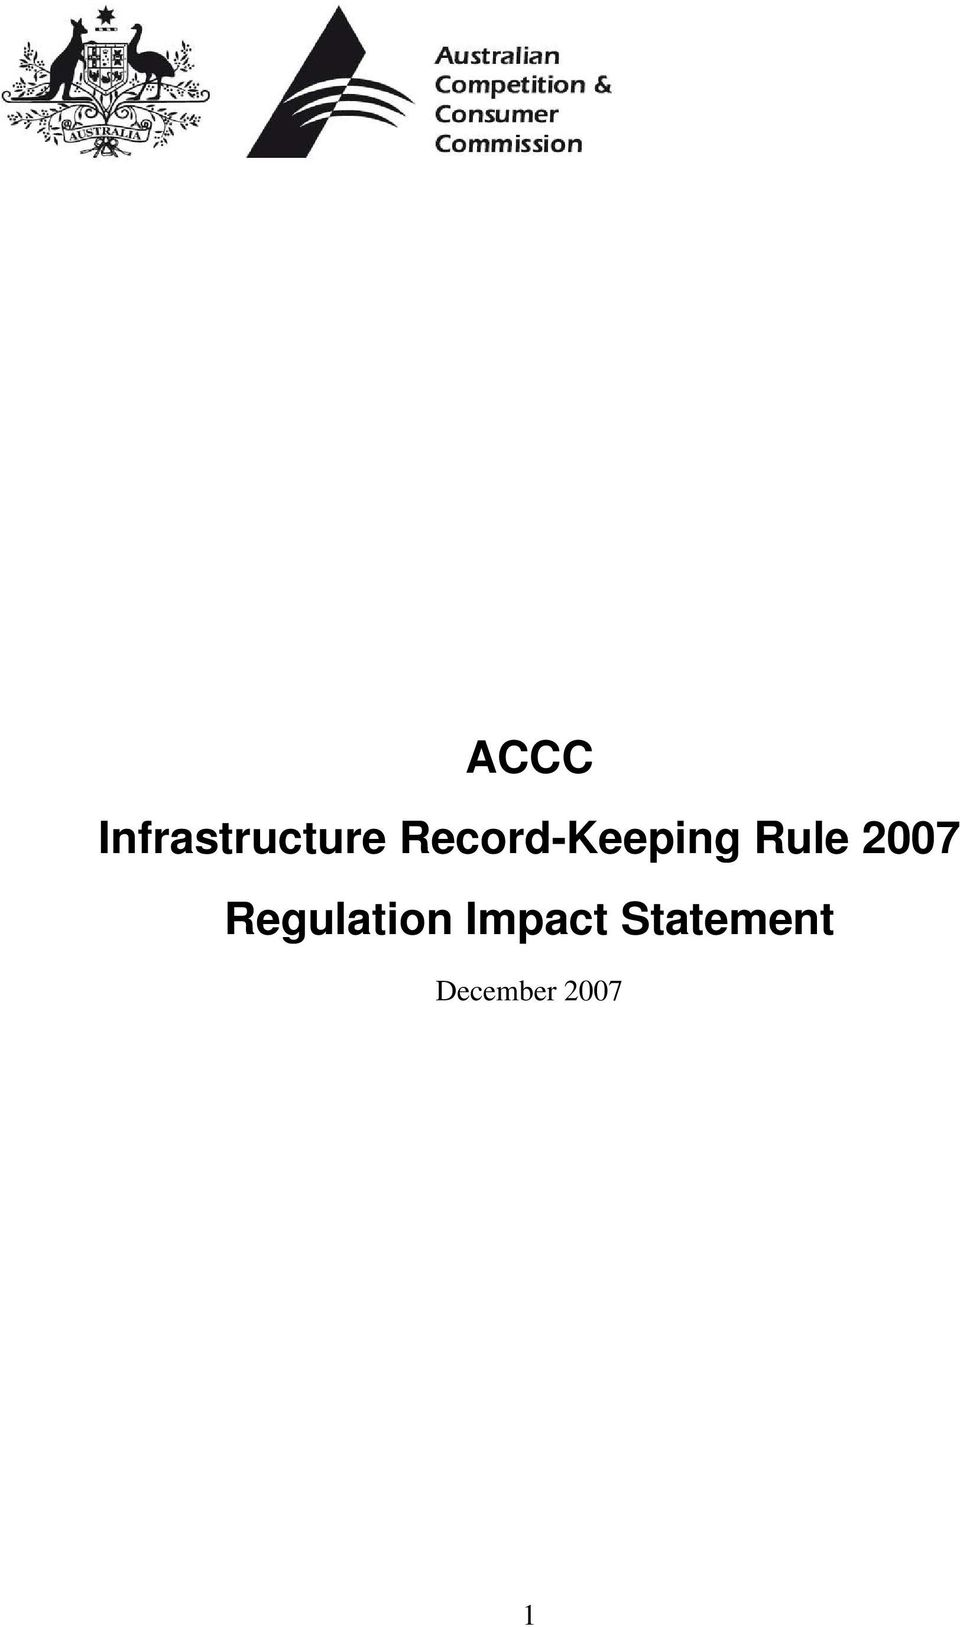 2007 Regulation